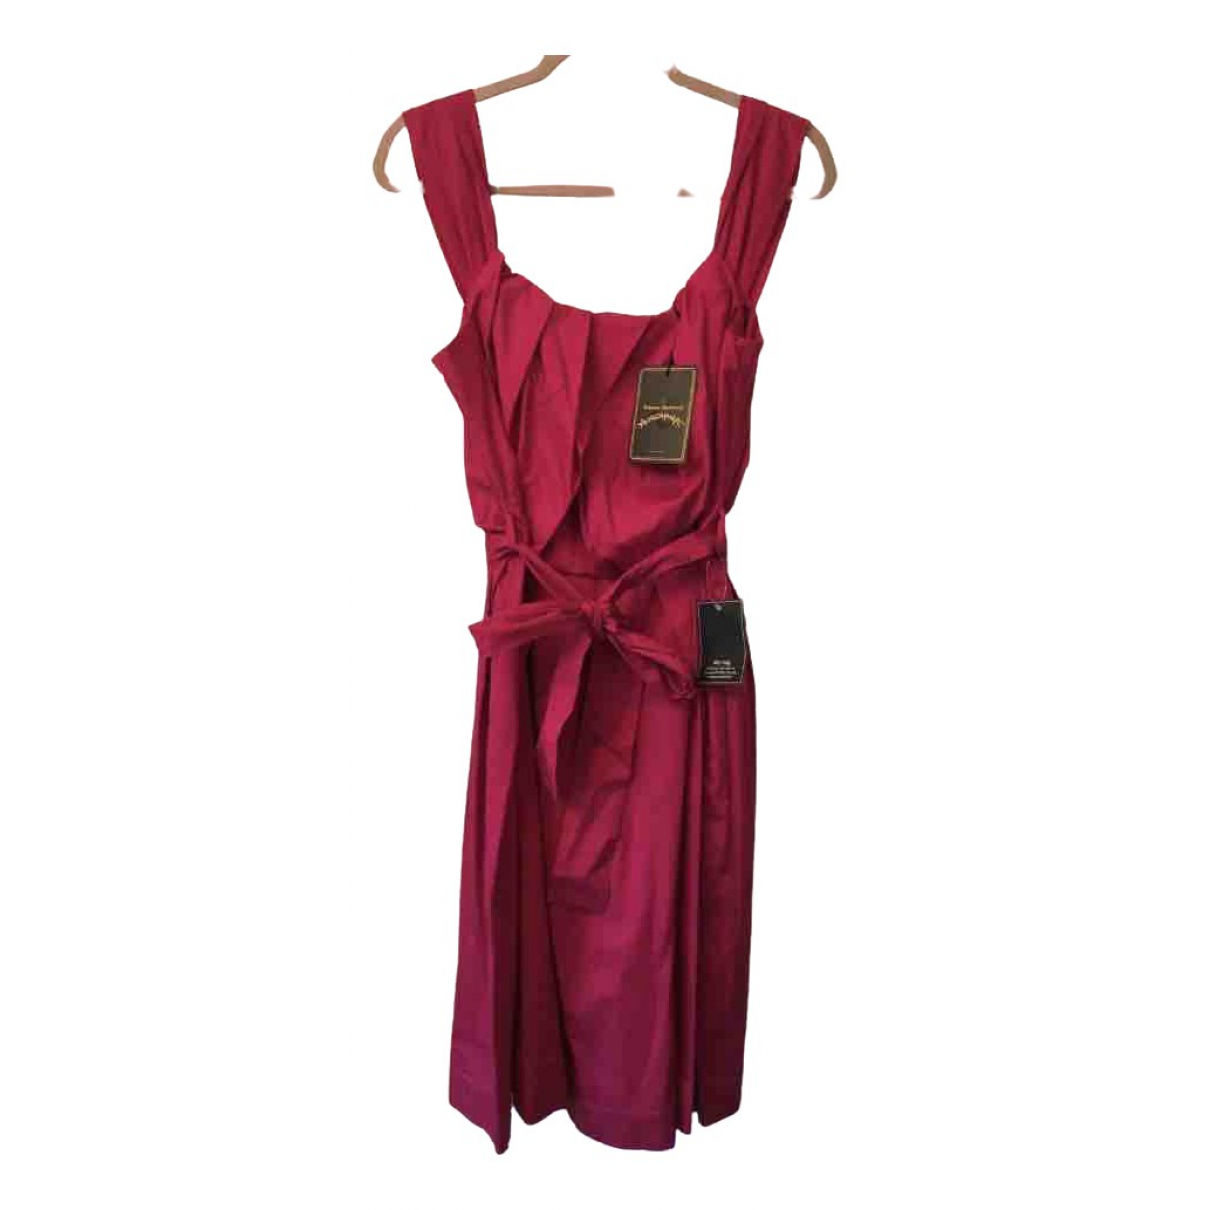 Vivienne Westwood Anglomania \N Pink Cotton dress for Women 46 IT